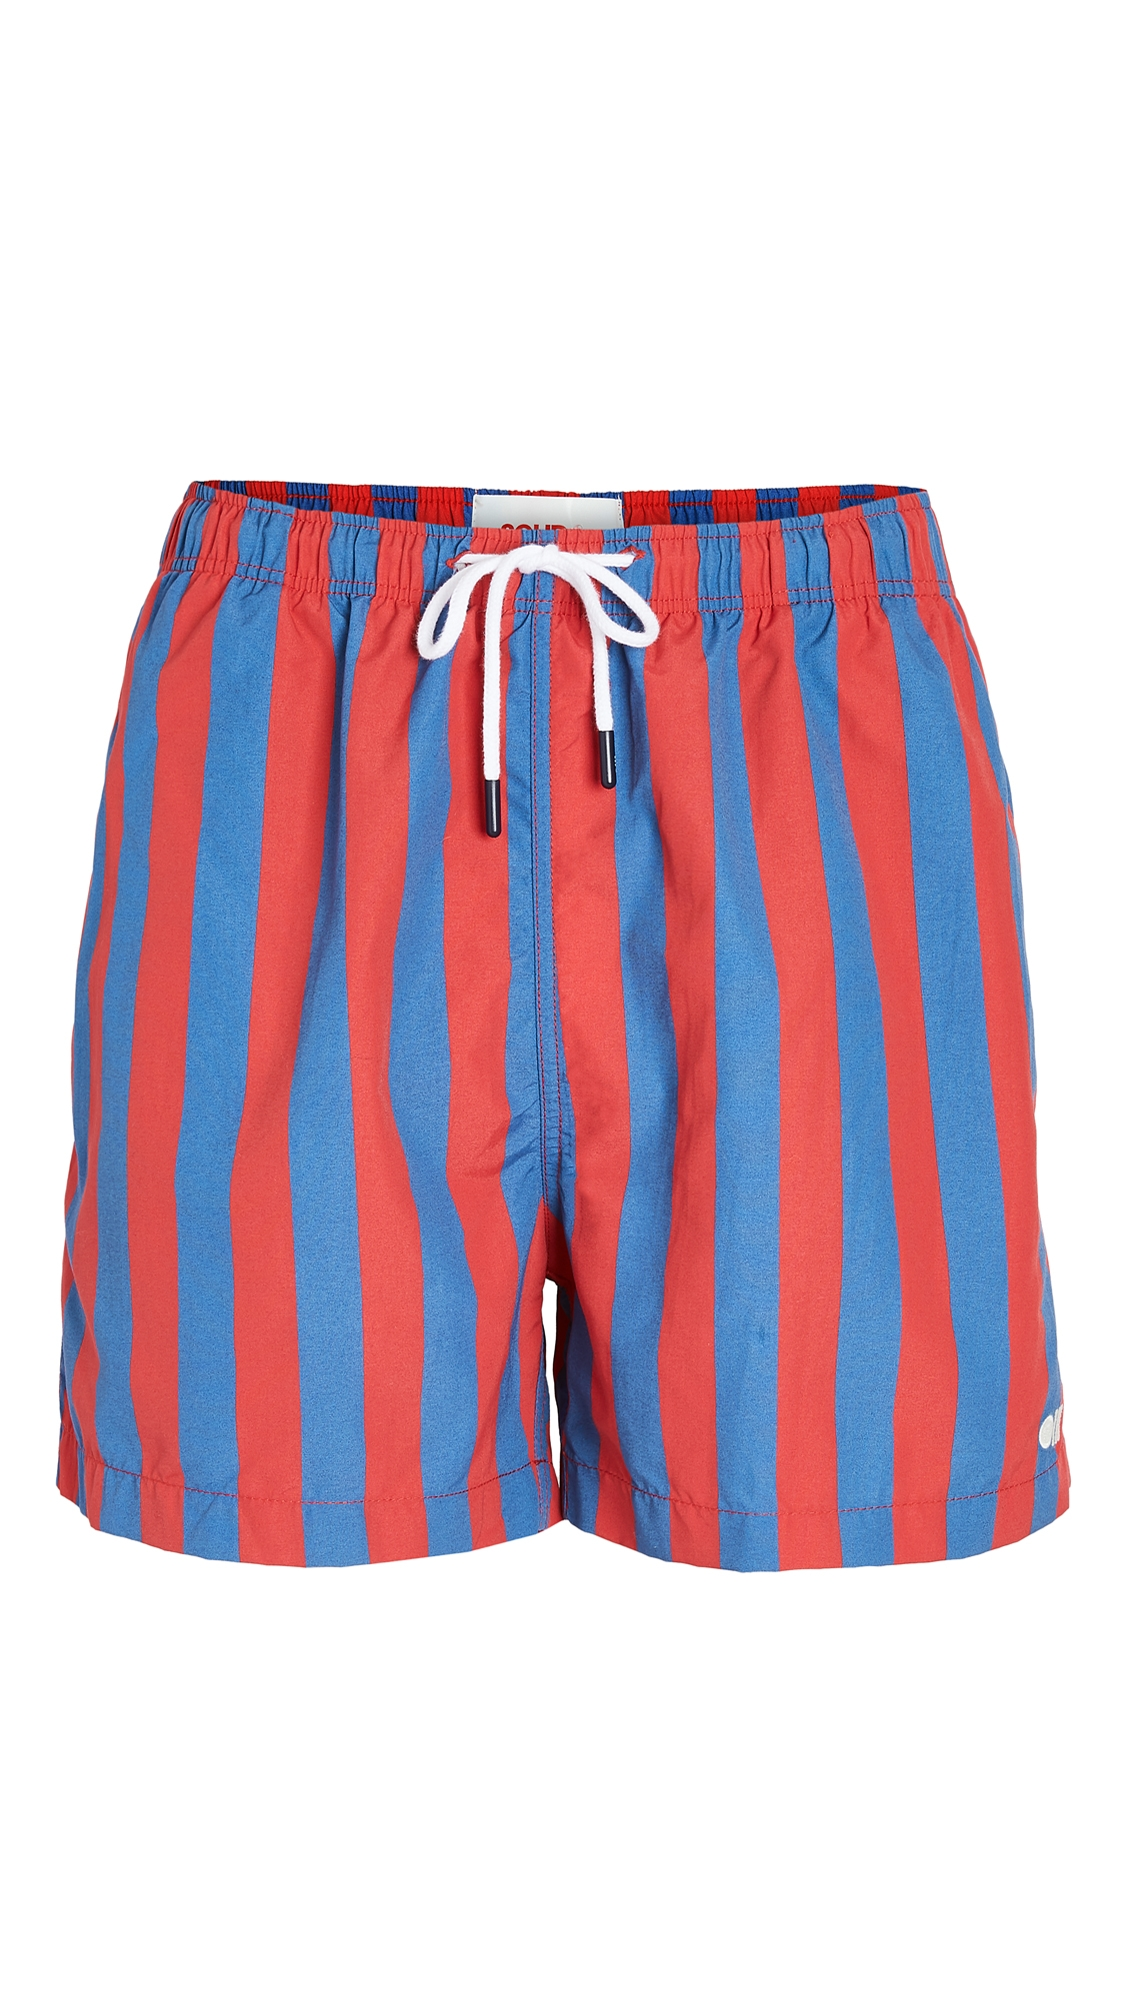 The Classic Striped Swim Trunks